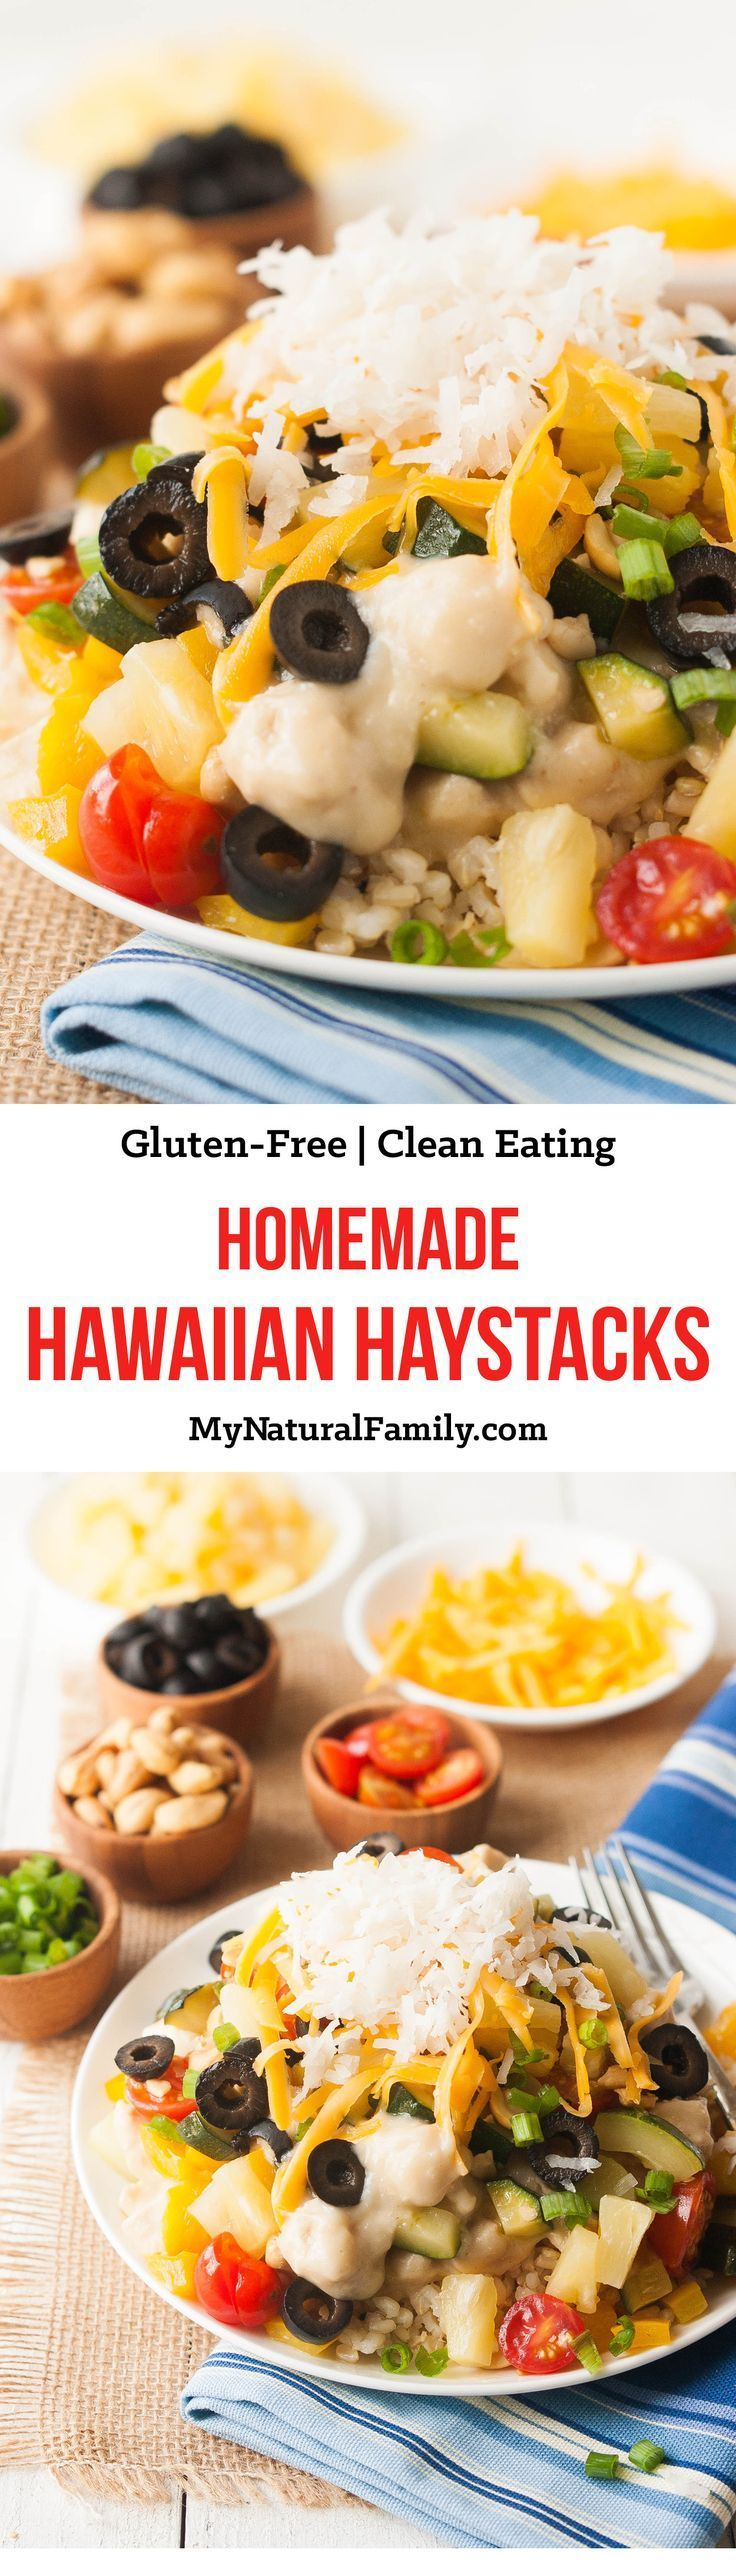 Homemade Hawaiian Haystacks Recipe {Gluten-Free, Clean Eating} - the quick white sauce only takes a few minutes and tastes so much better than a can of soup.